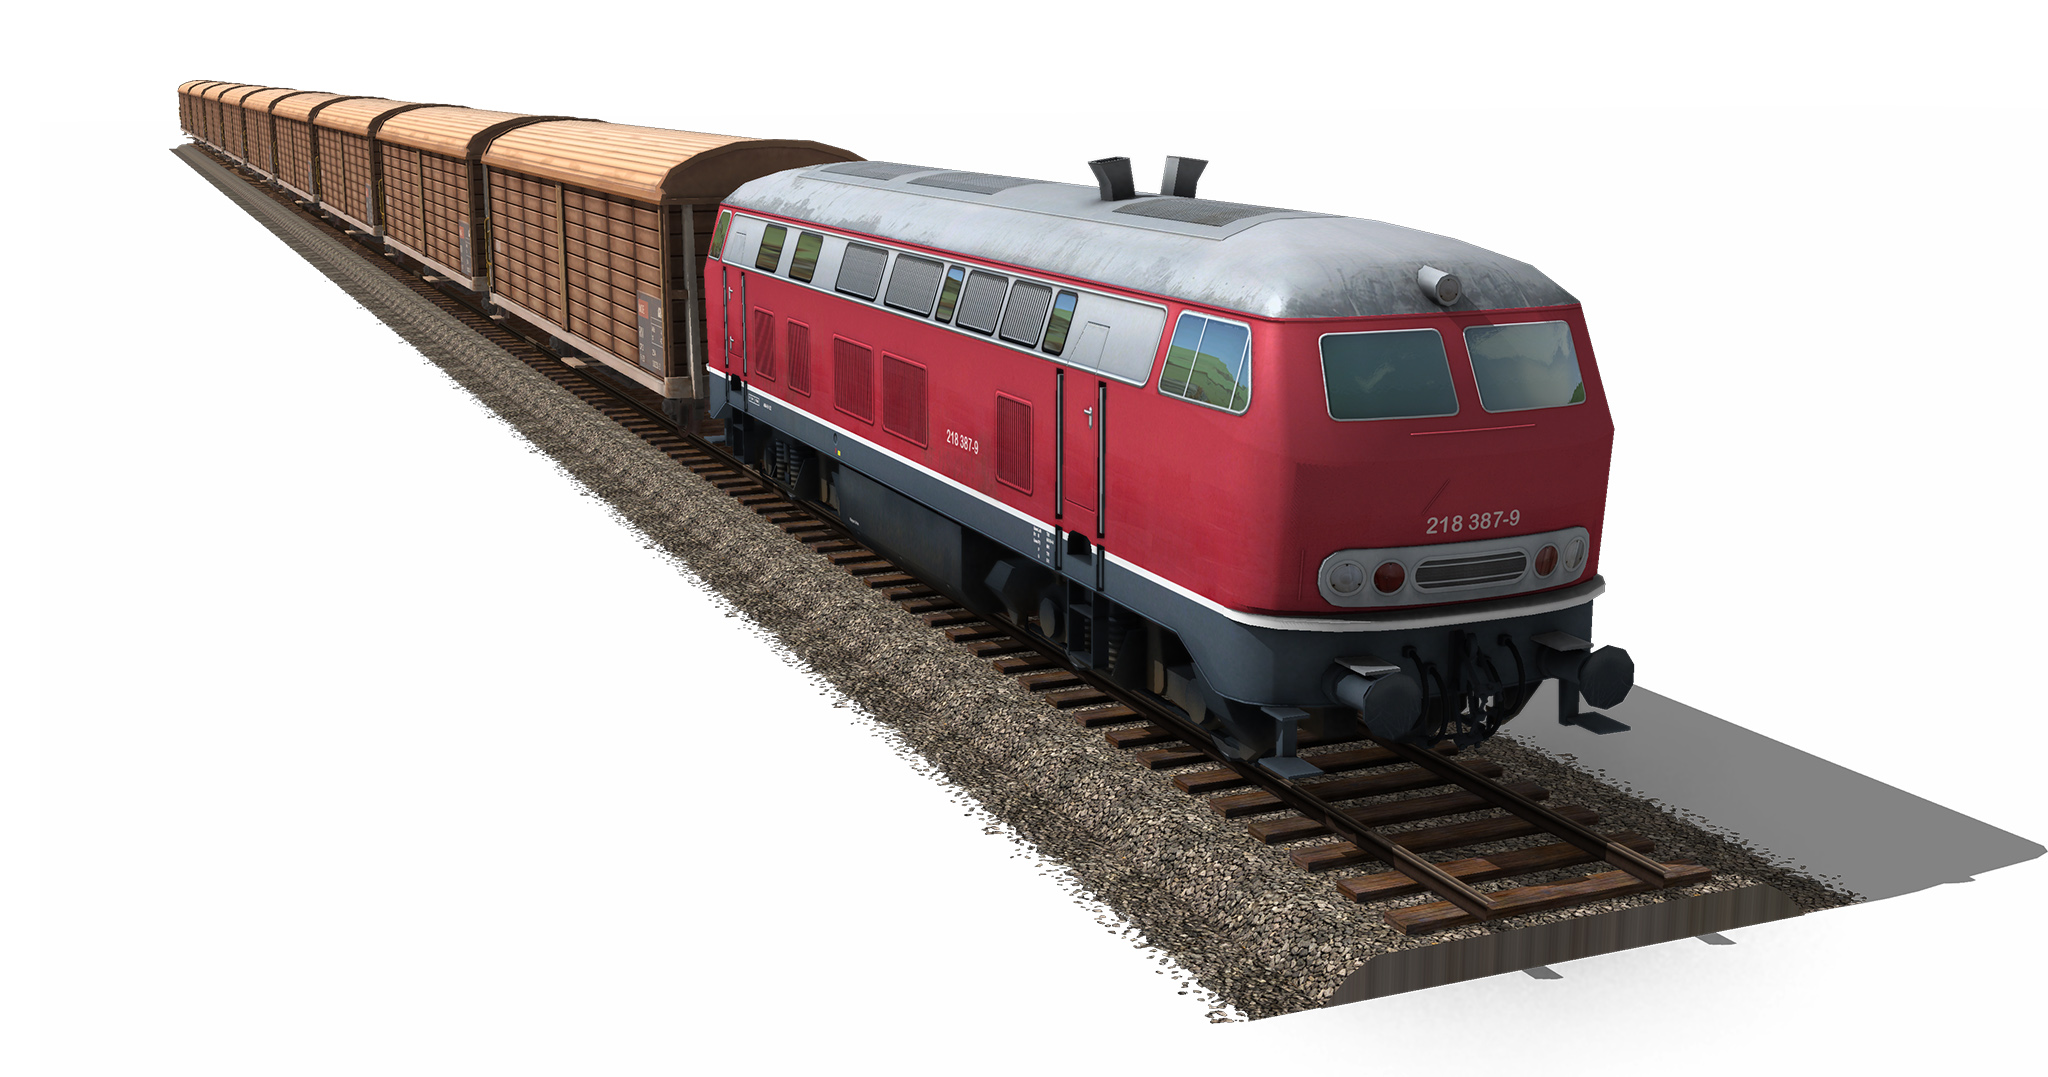 Png Image Of Train - Train_Br_218_Cargo_Camera_0, Transparent background PNG HD thumbnail